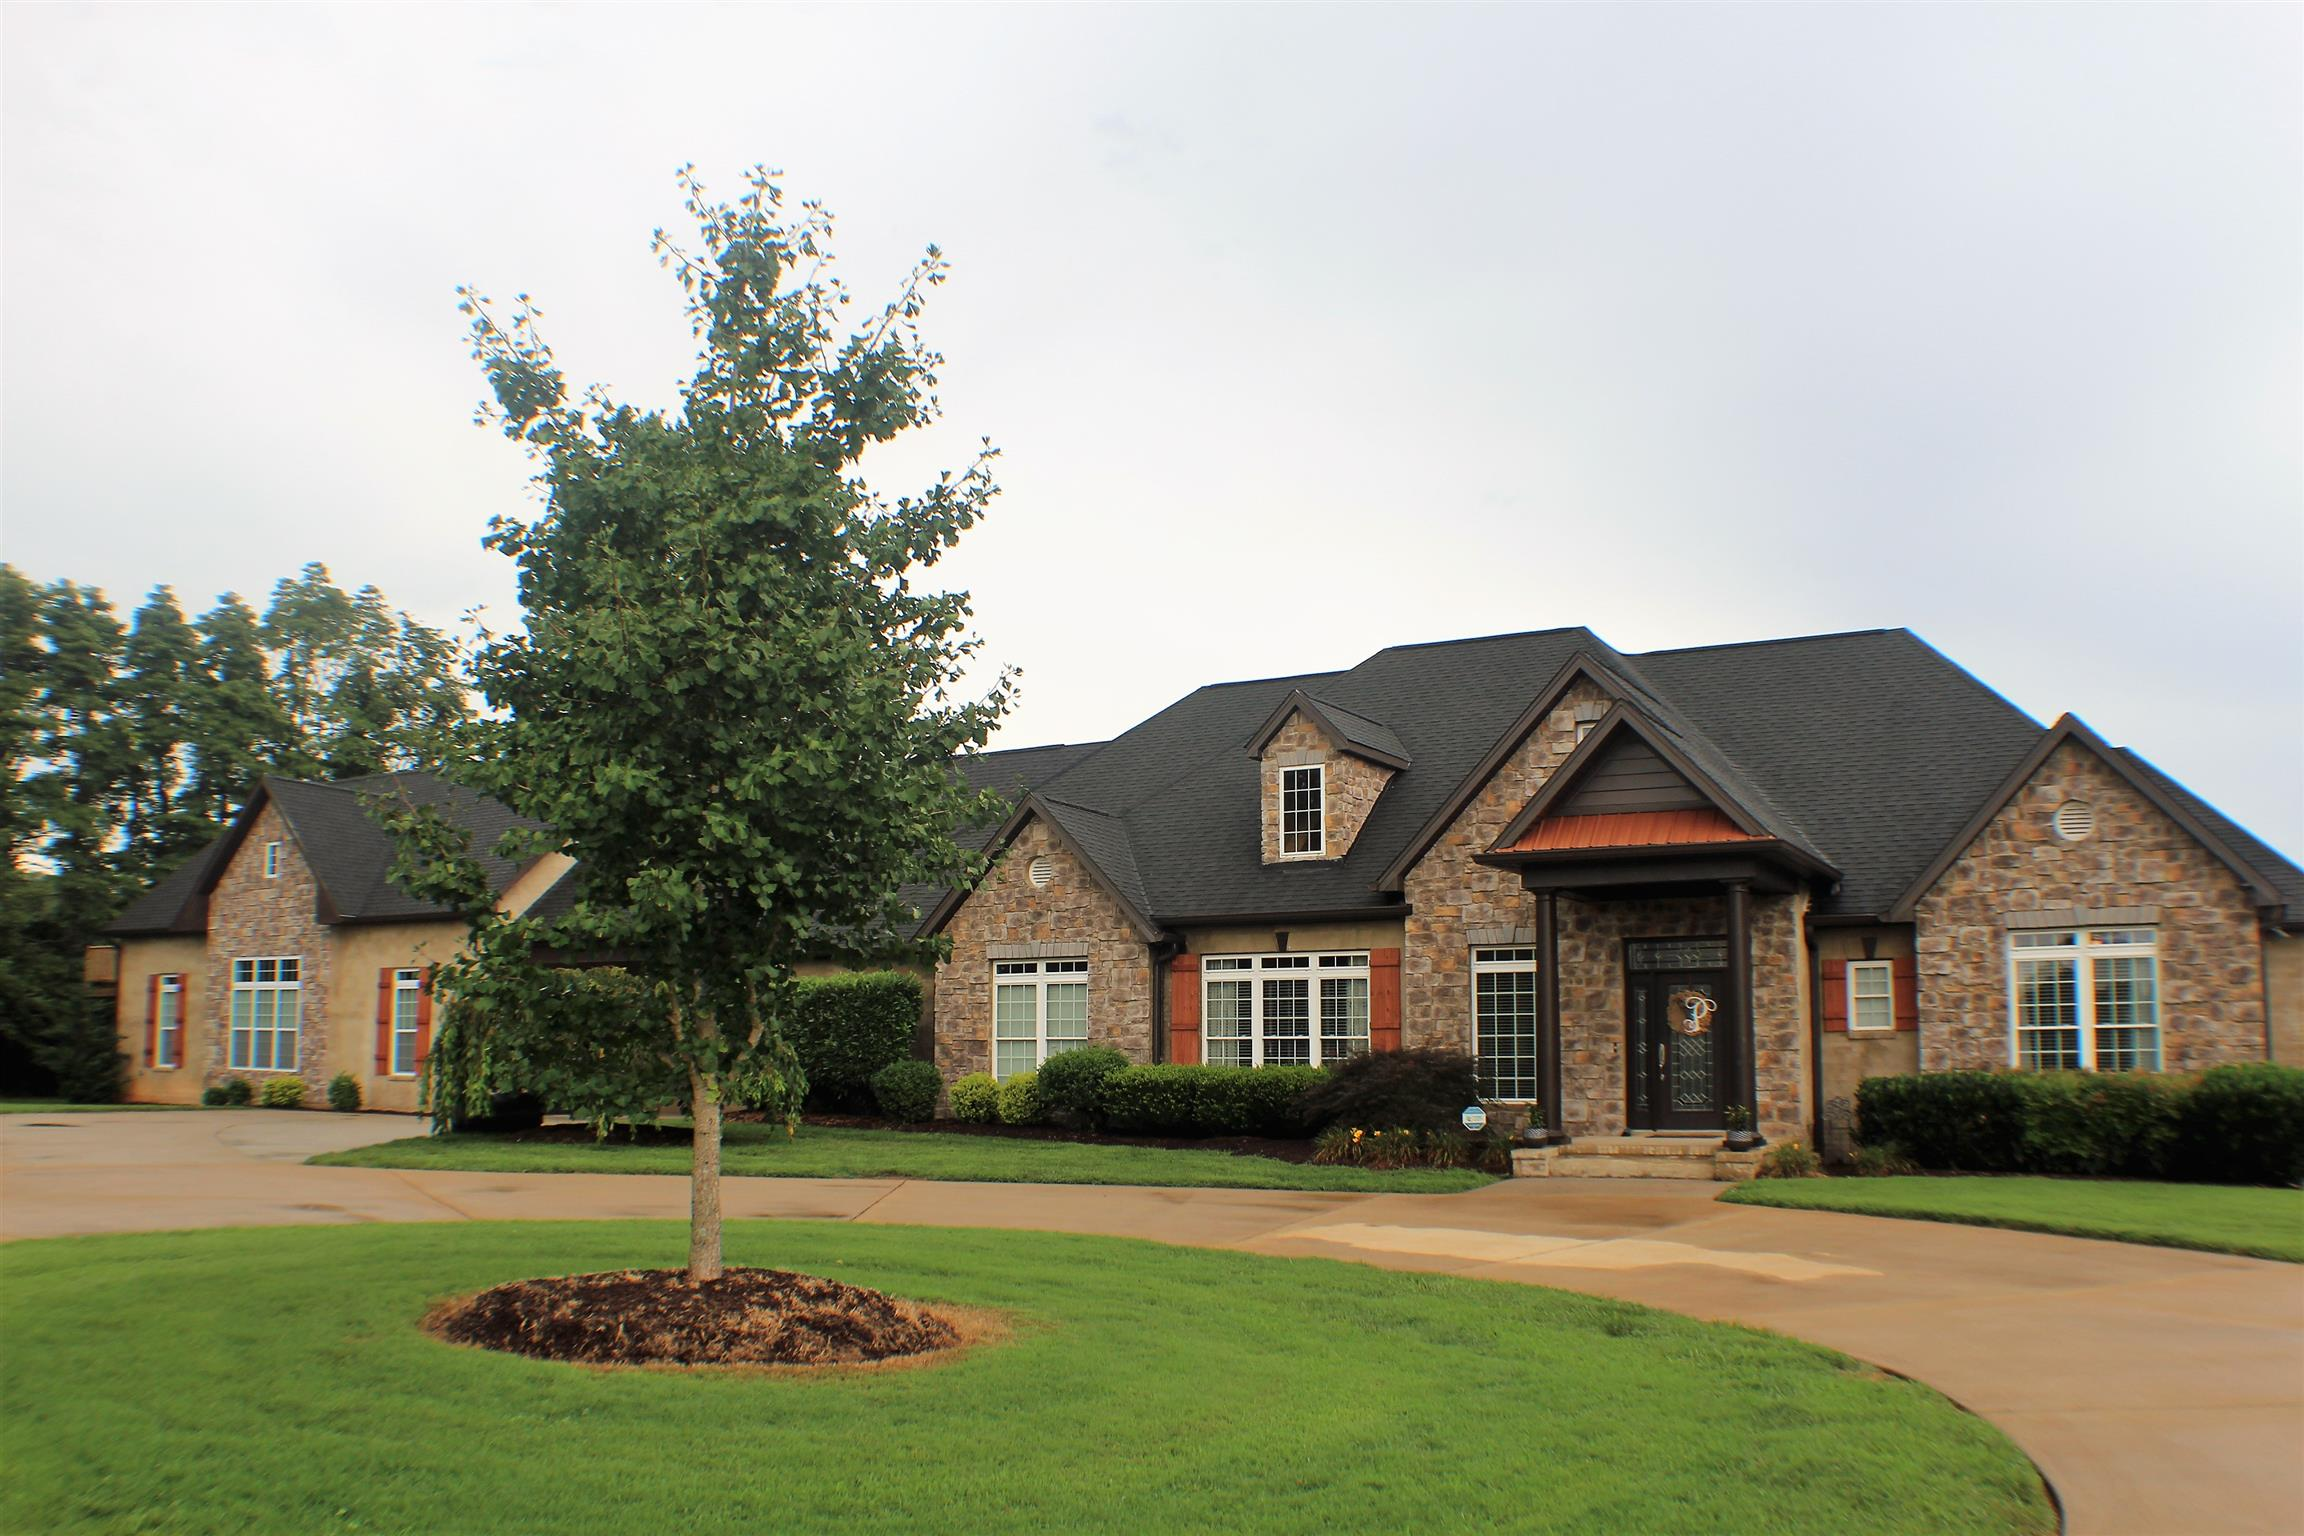 170 Southern Woods Ct Cookeville, TN 38506